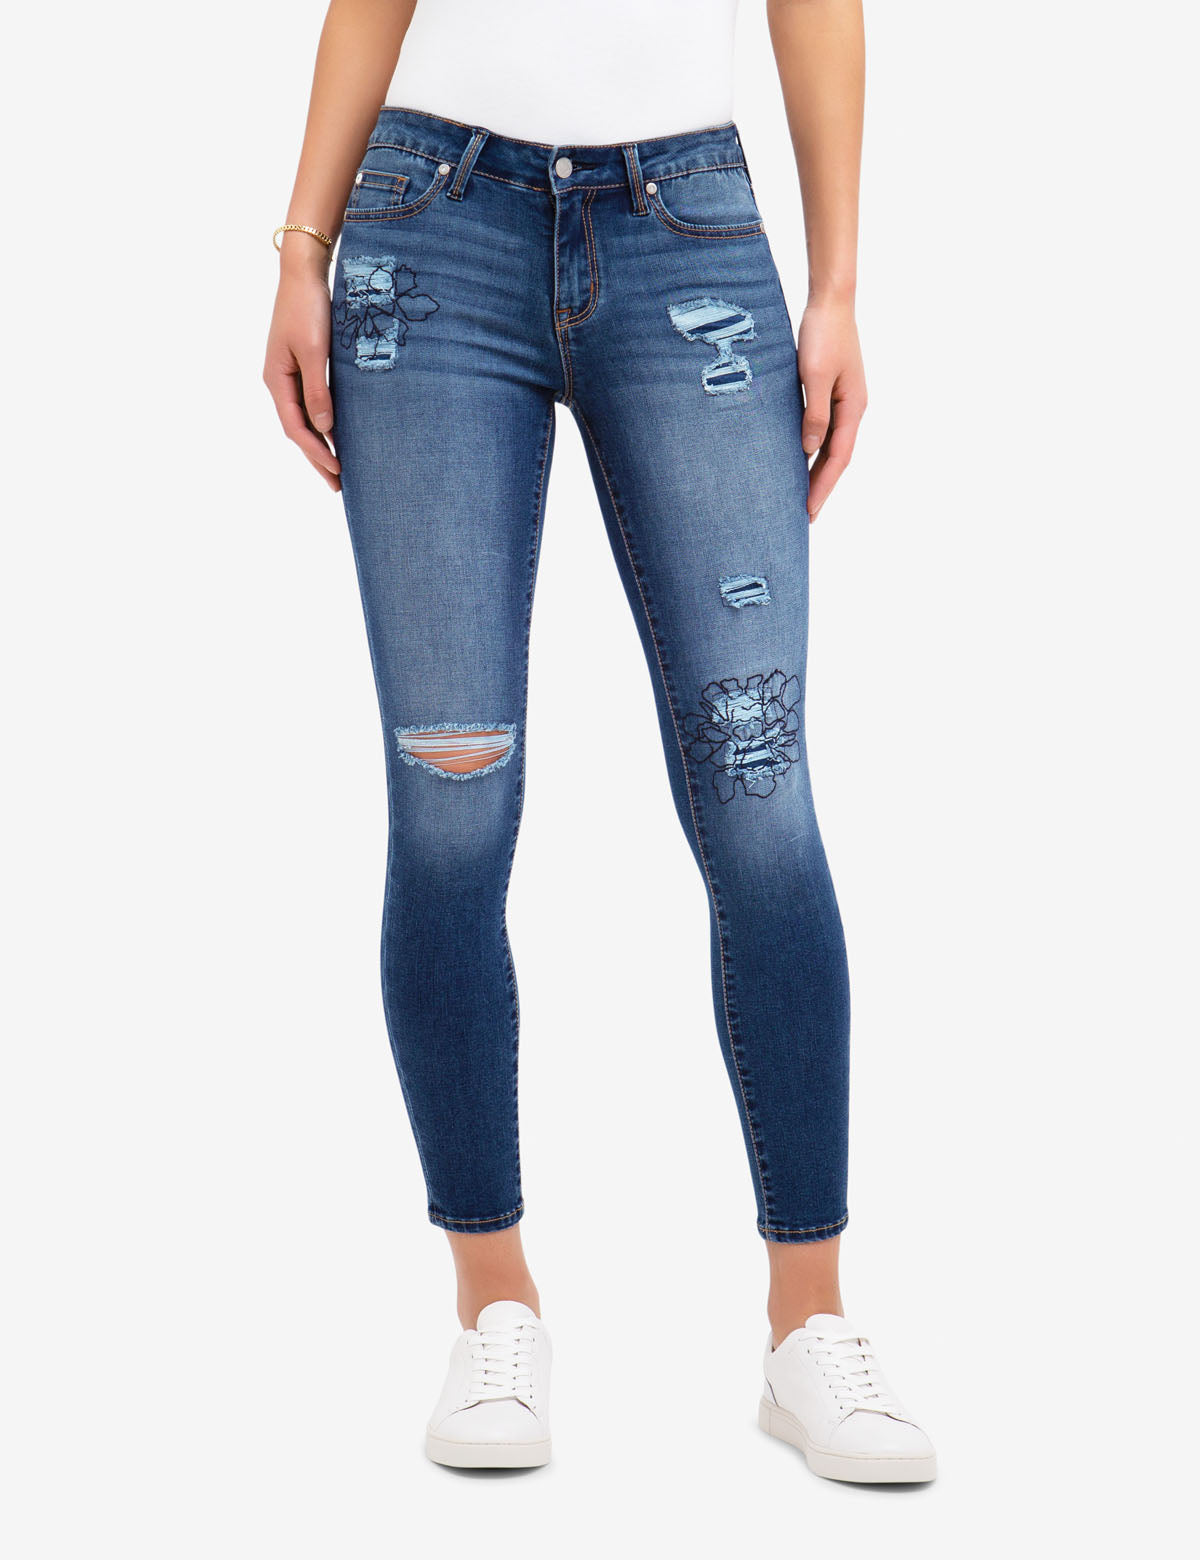 REPREVE® MID RISE EMBROIDERED DESTRUCTIVE JEGGING